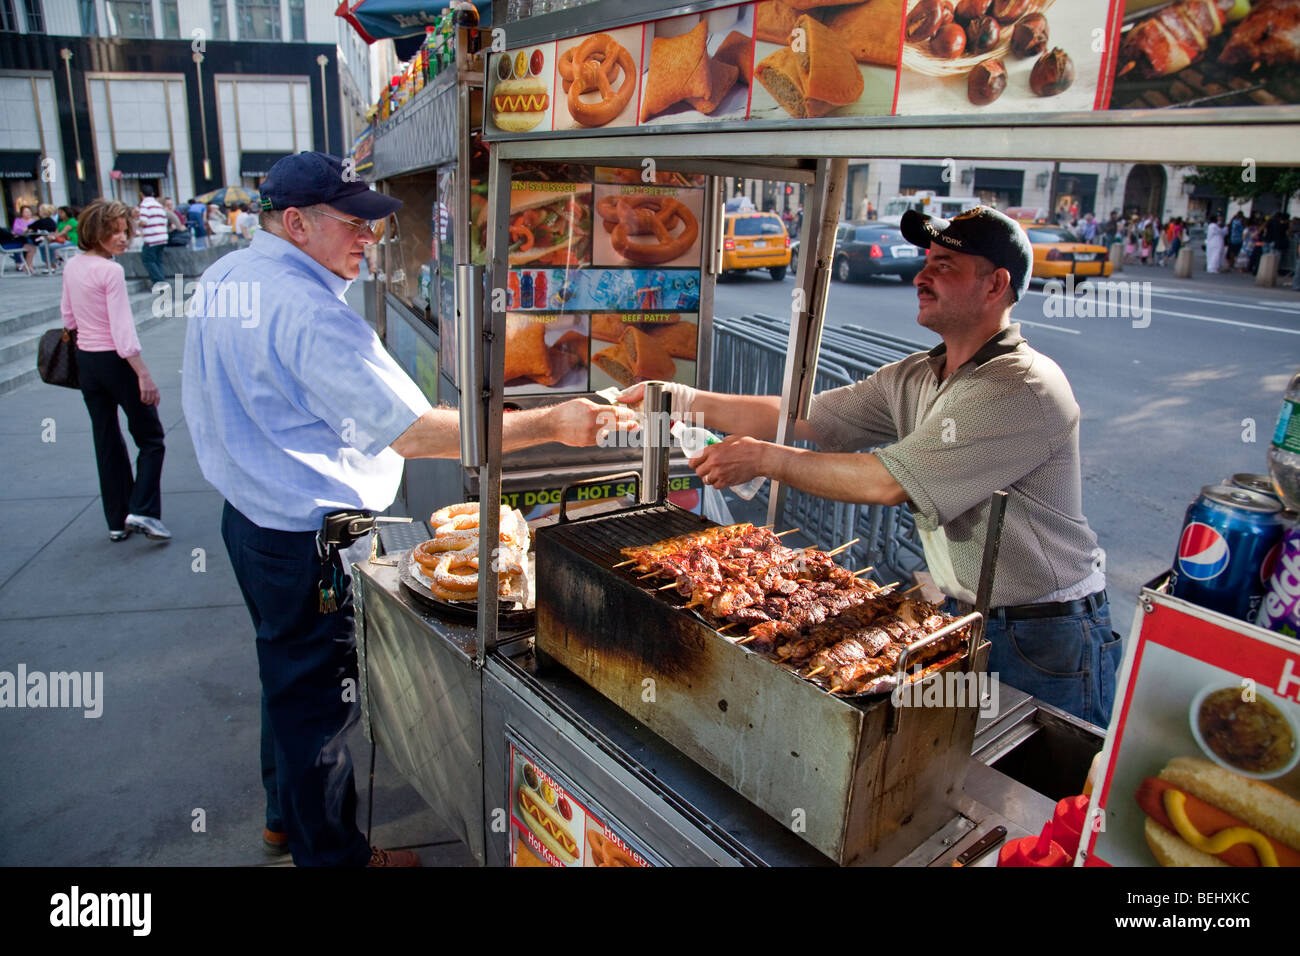 Street food vendor in manhattan in new york city stock for American cuisine in nyc